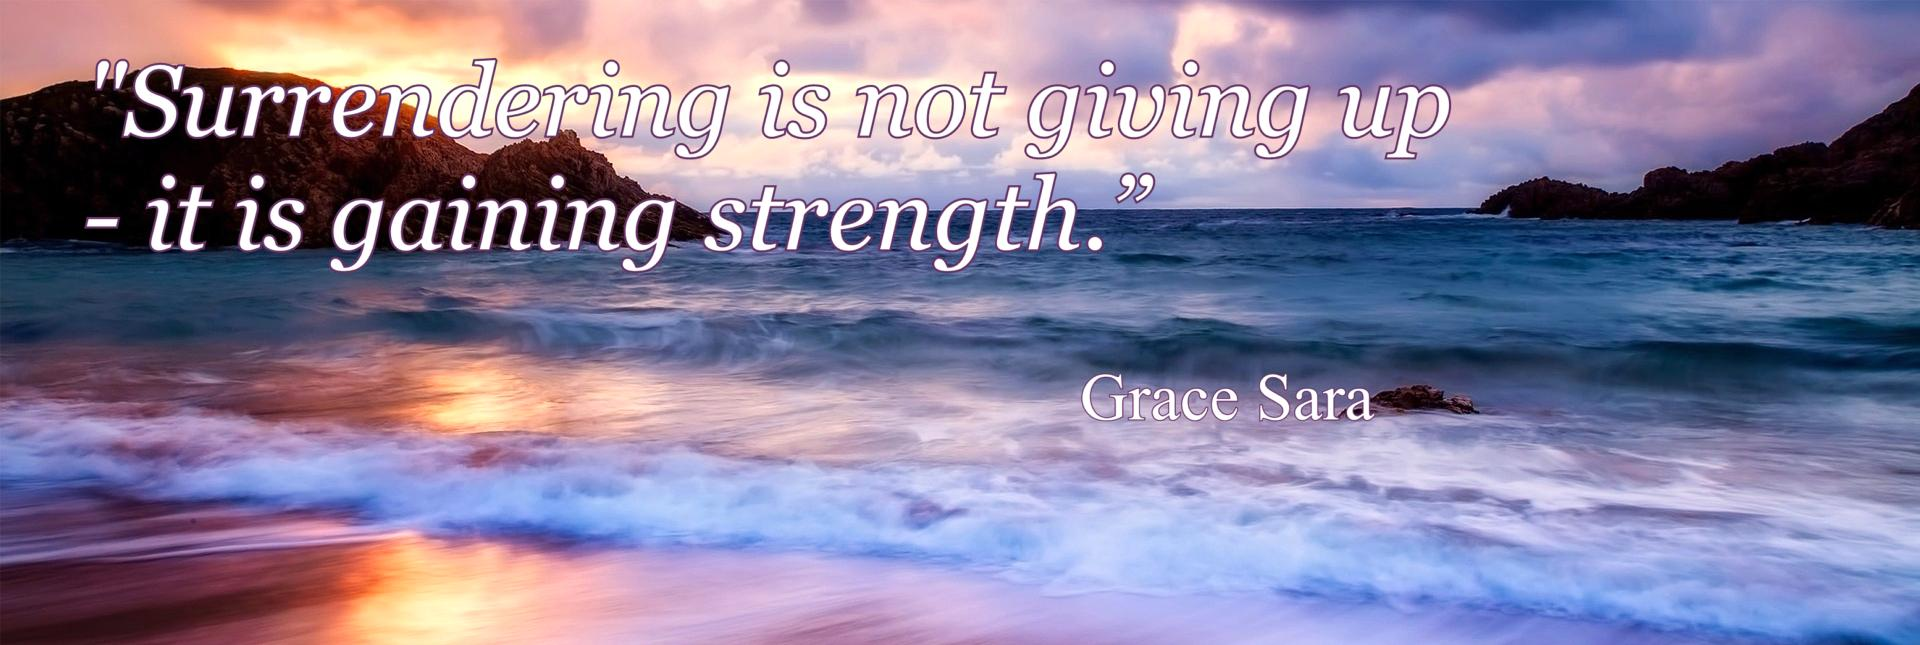 """Surrendering is not giving up  - it is gaining strength."" - Grace Sara.  DML Counselling & Psychotherapy, County Wexford, Ireland"